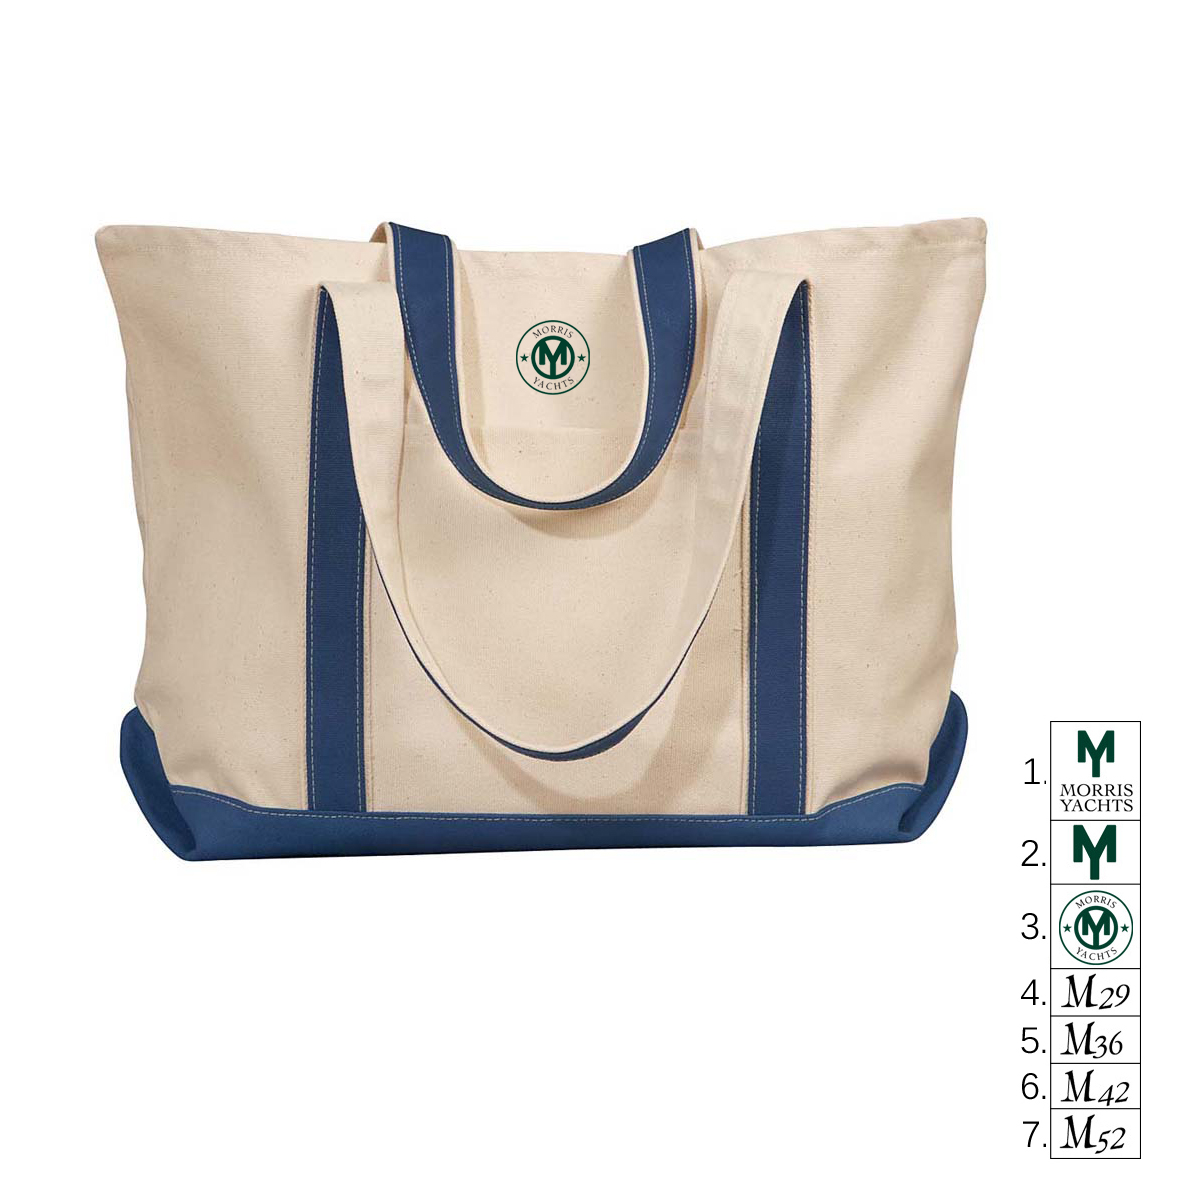 MORRIS YACHTS - CANVAS TOTE